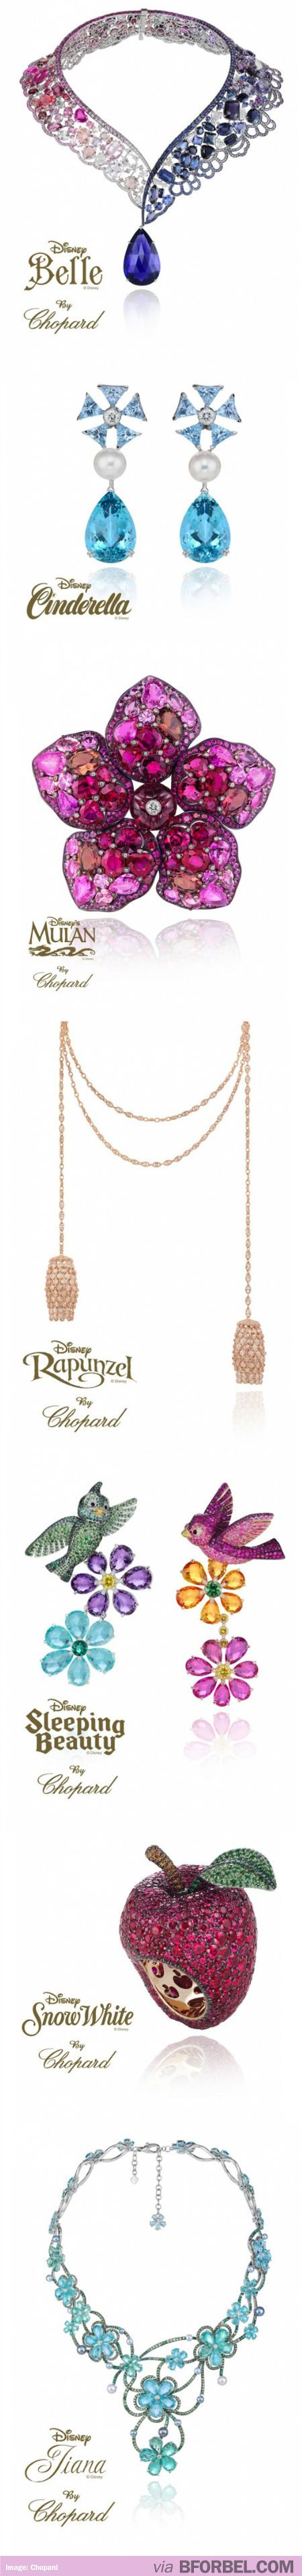 Disney Princess inspired Jewelry, by Chopard